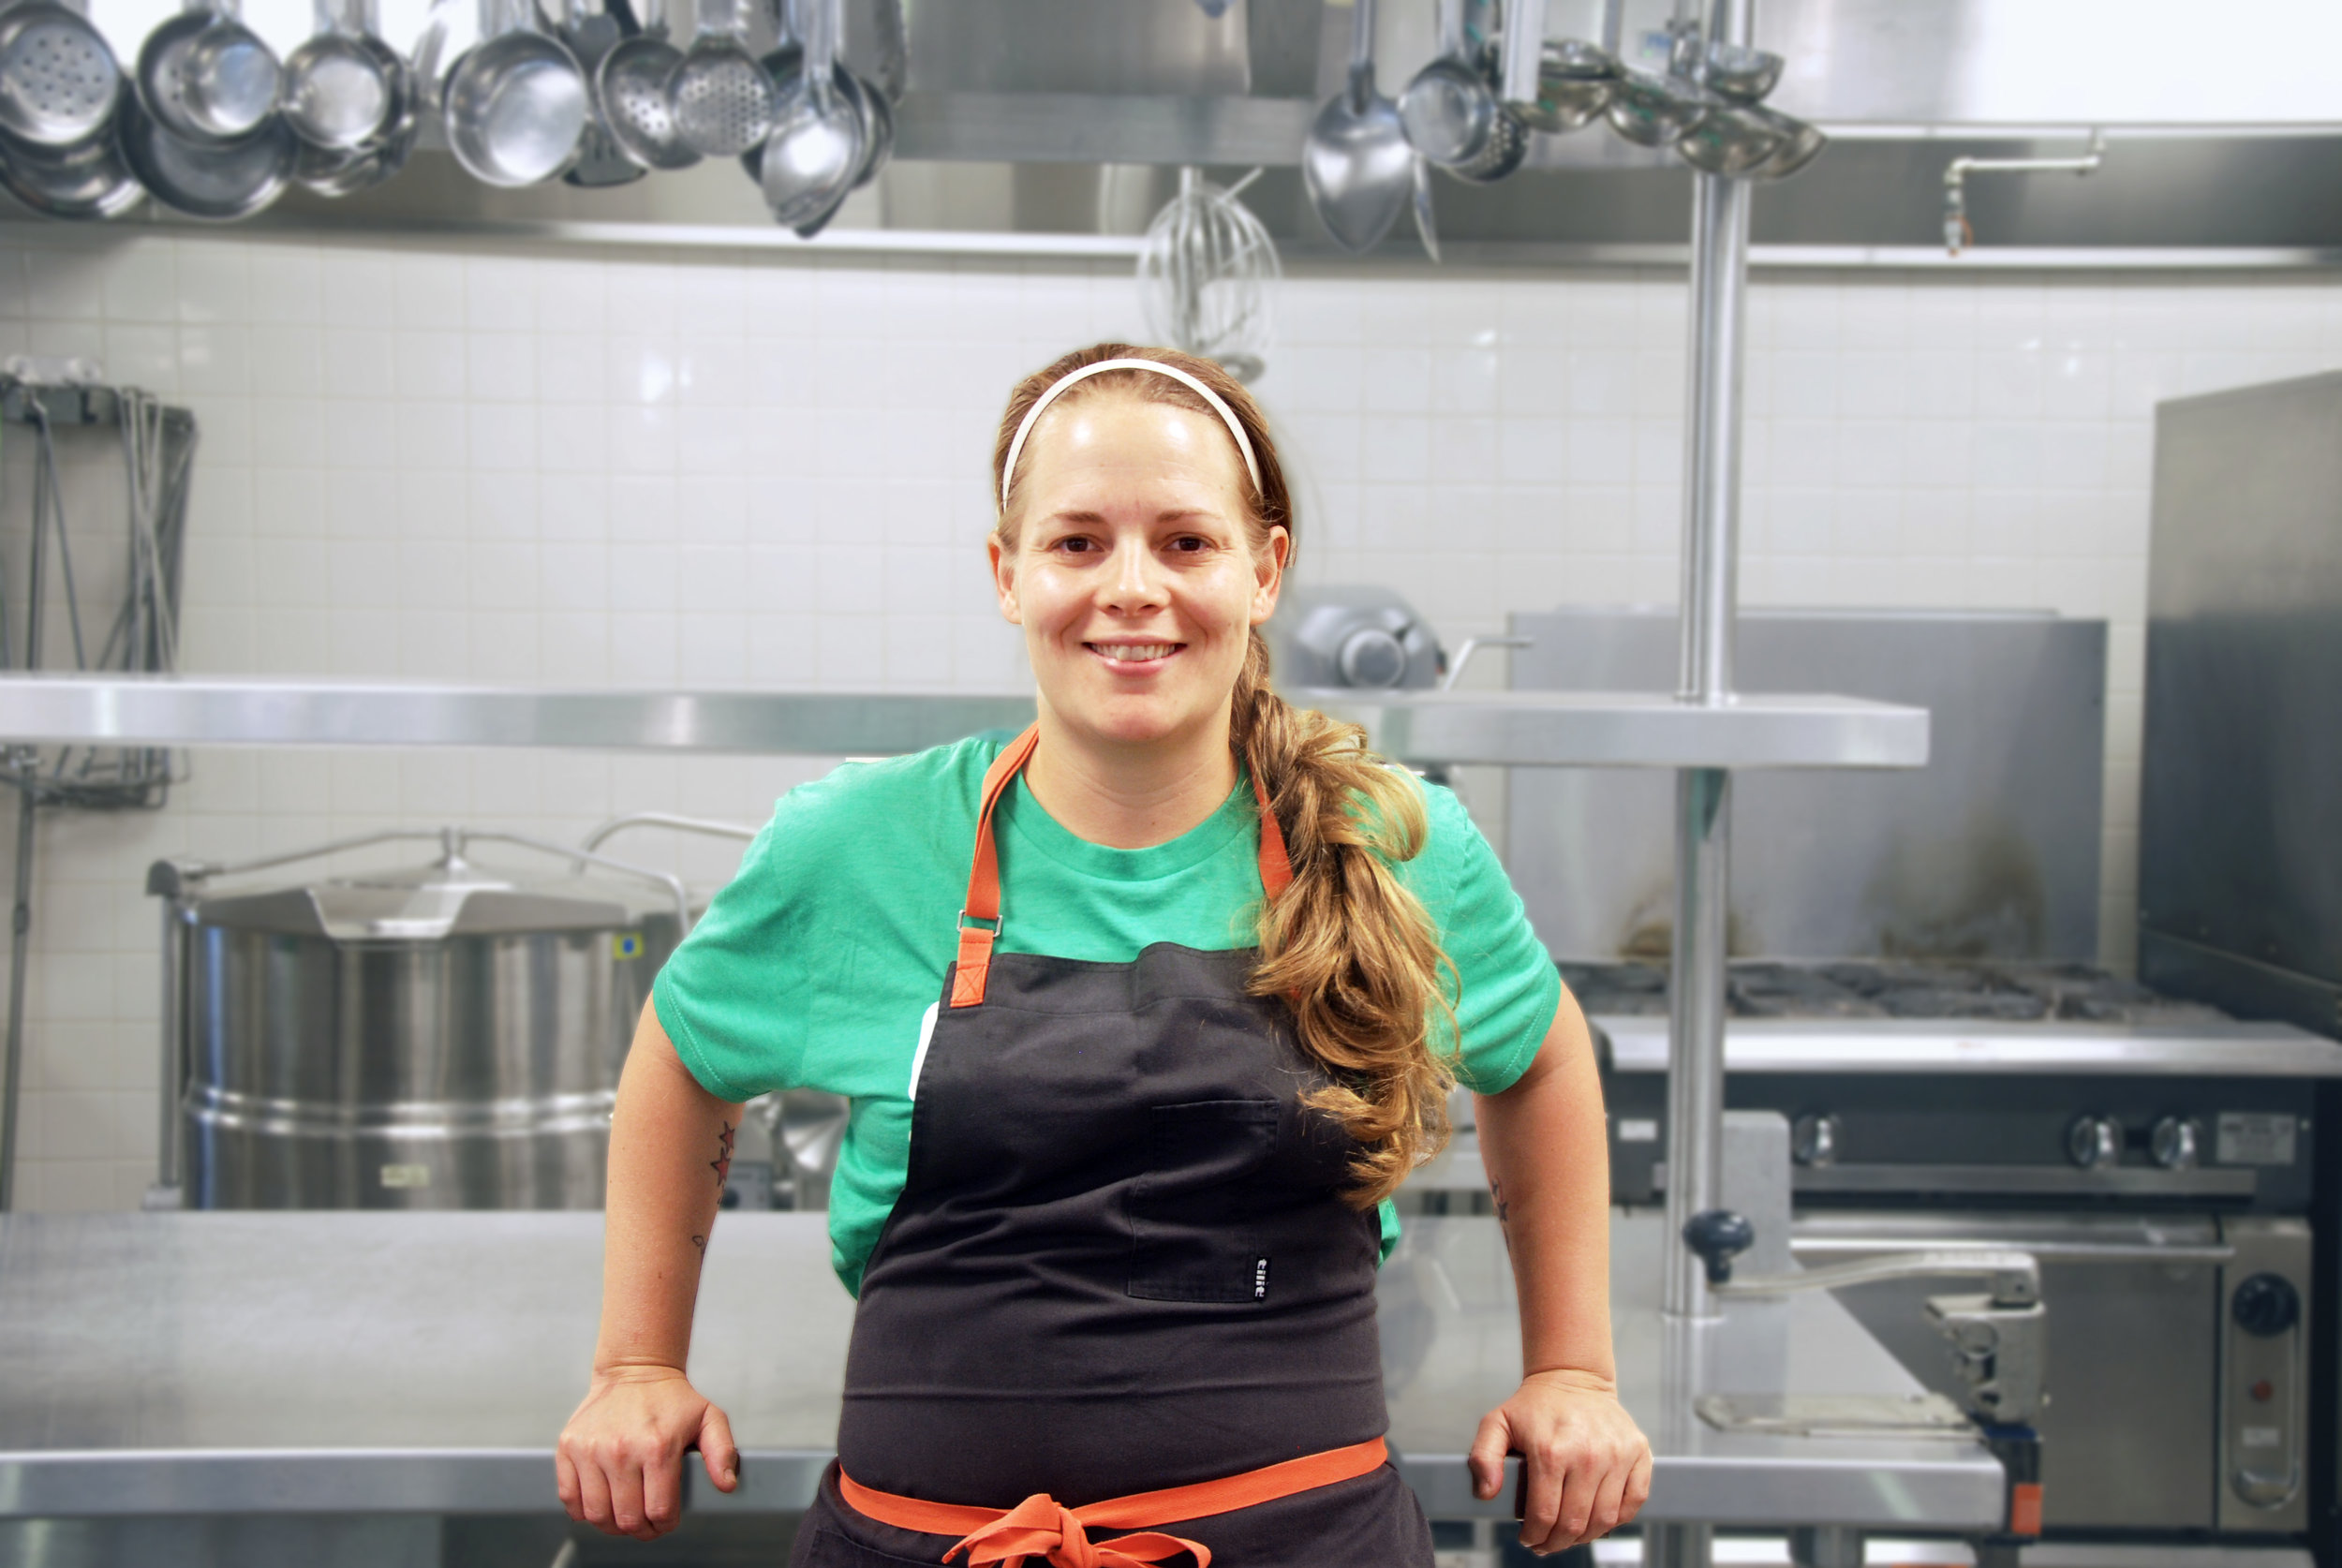 April was born and raised in Pennsylvania. After graduating from the Culinary Institute of America in Hyde Park, she spent ten years cooking at several resorts in Phoenix, Arizona before returning to the East coast as an executive sous chef for Newport Restaurant Group in Newport, Rhode Island. April joined  Brigaid  in 2016.